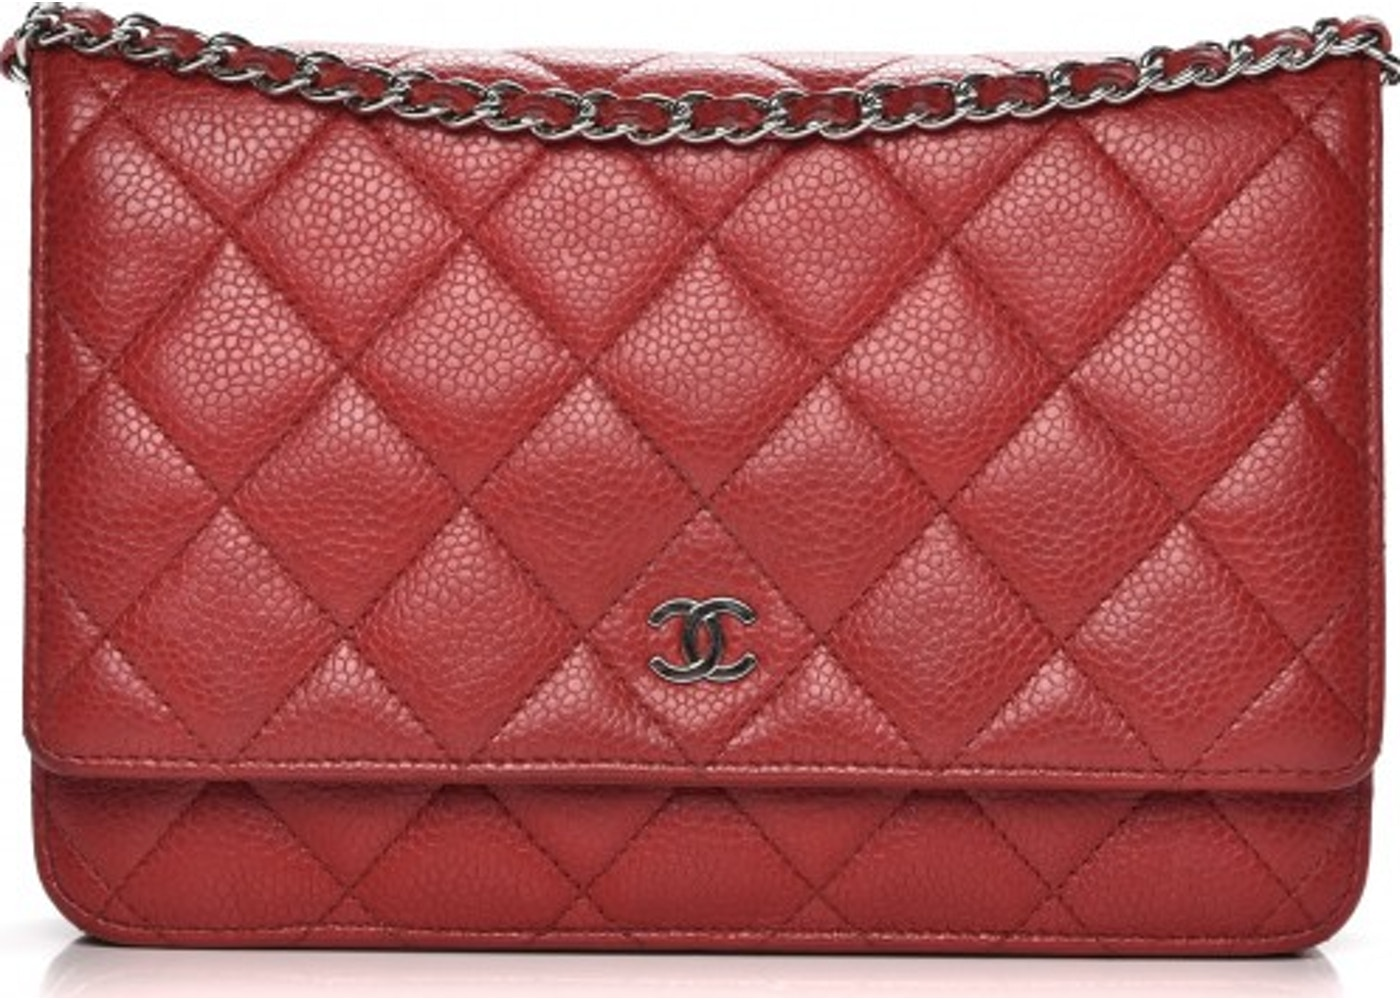 fef1b18faa90 Chanel Wallet on Chain Diamond Quilted Red. Diamond Quilted Red